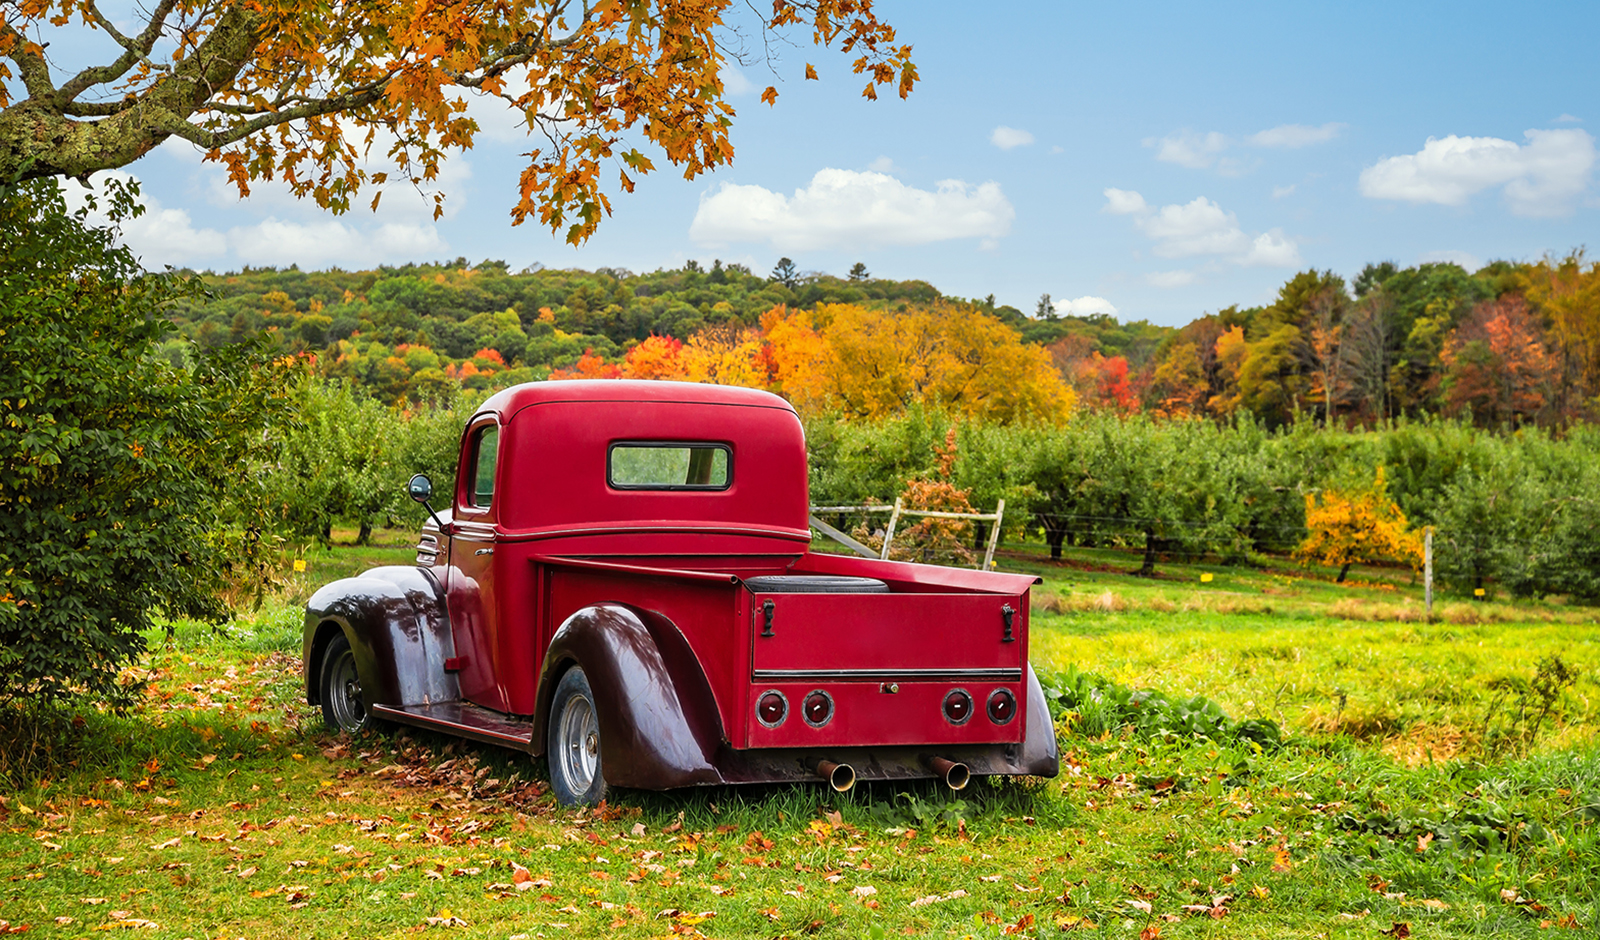 things-to-know-about-painting-a-truck-pretty-red-truck-in-a-green-field